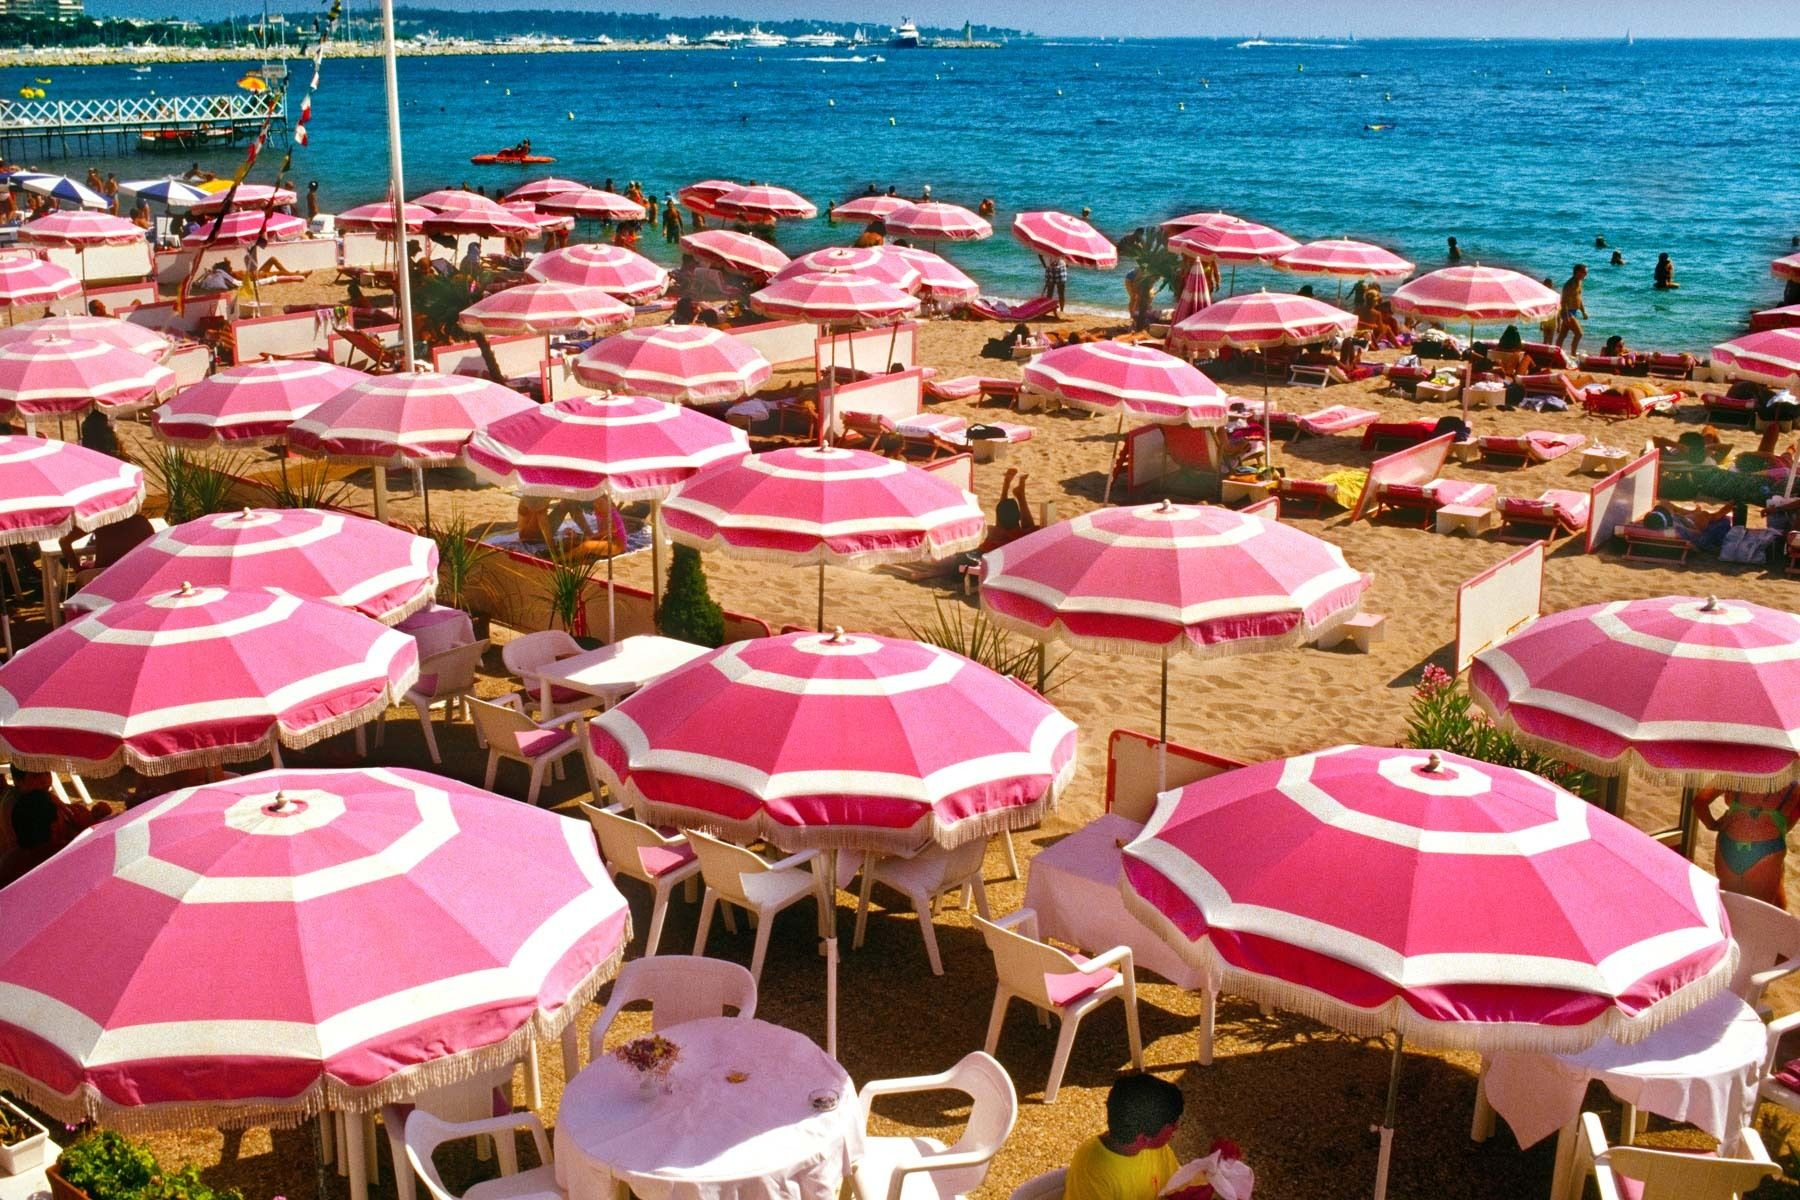 Pink Umbrellas – Cannes, France